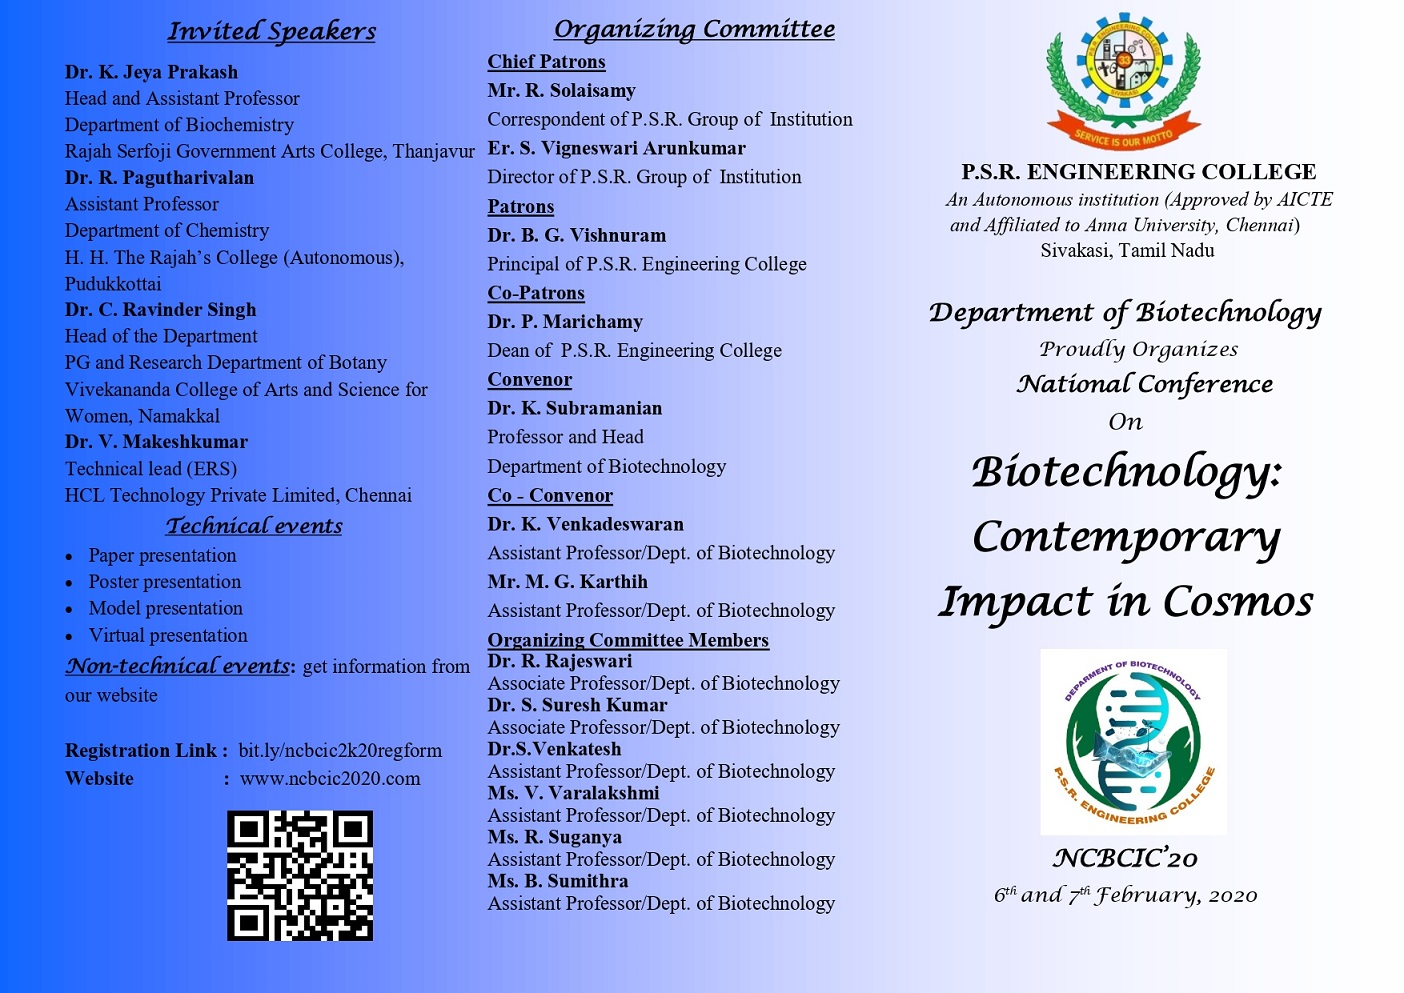 National Conference on Biotechnology:Contemporary Impact in Cosmos NCBCIC 20